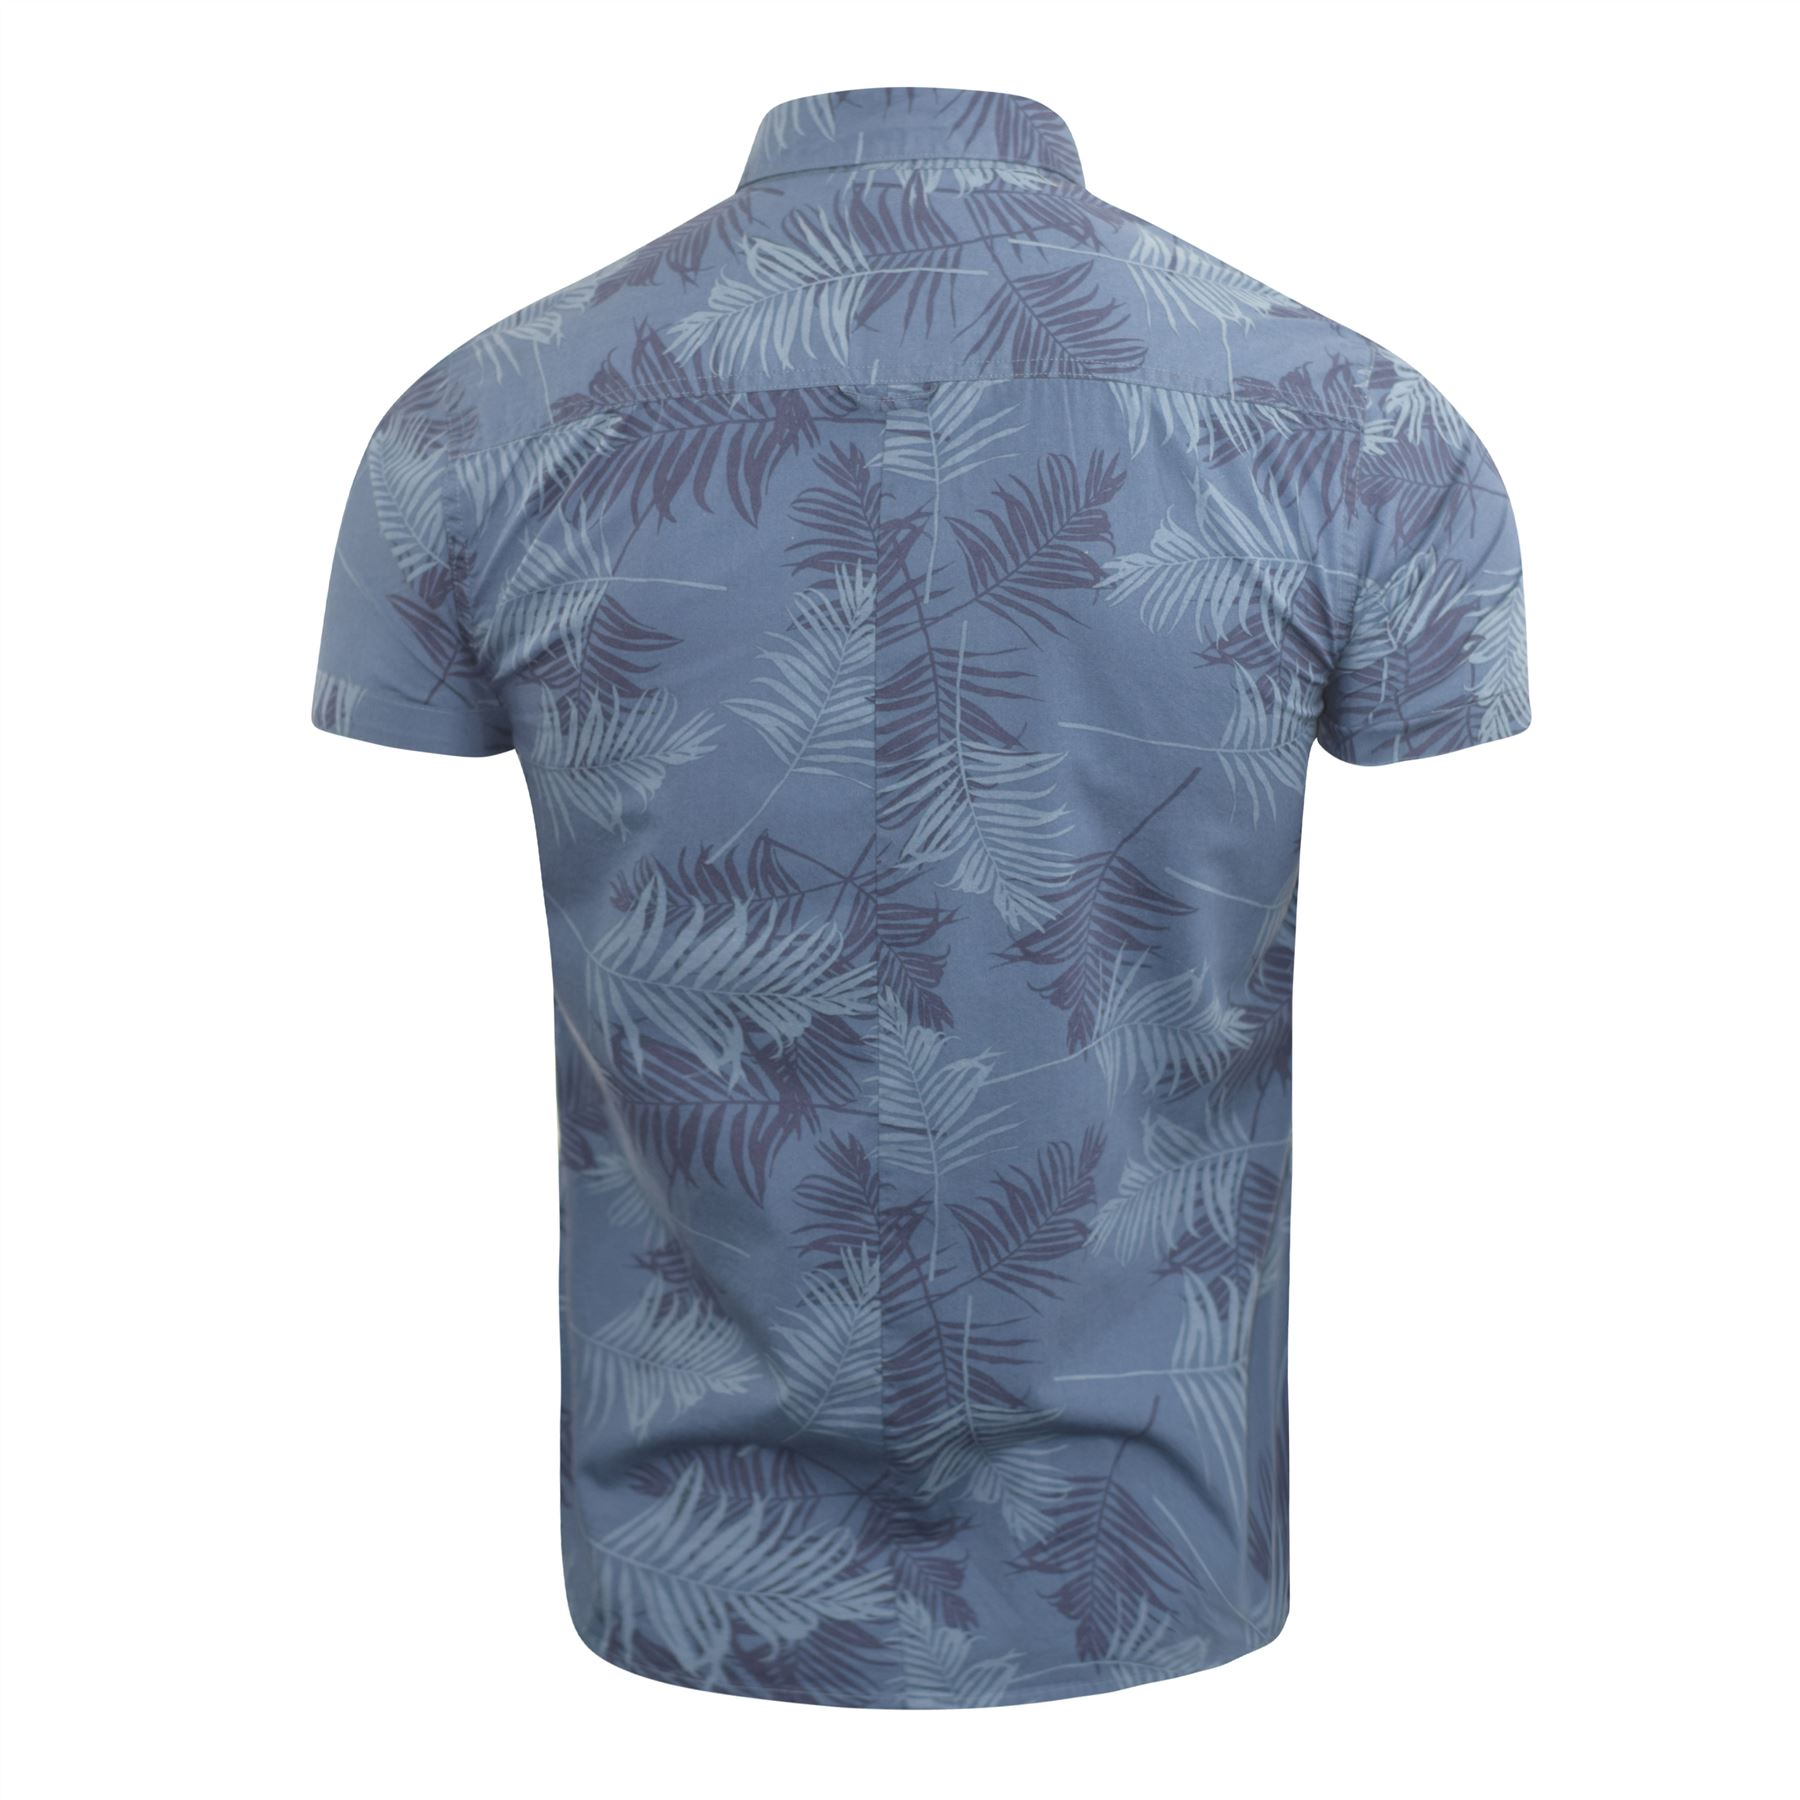 Mens-Floral-Shirt-Audley-Short-Sleeved-Cotton-Blend-Casual-Top thumbnail 7